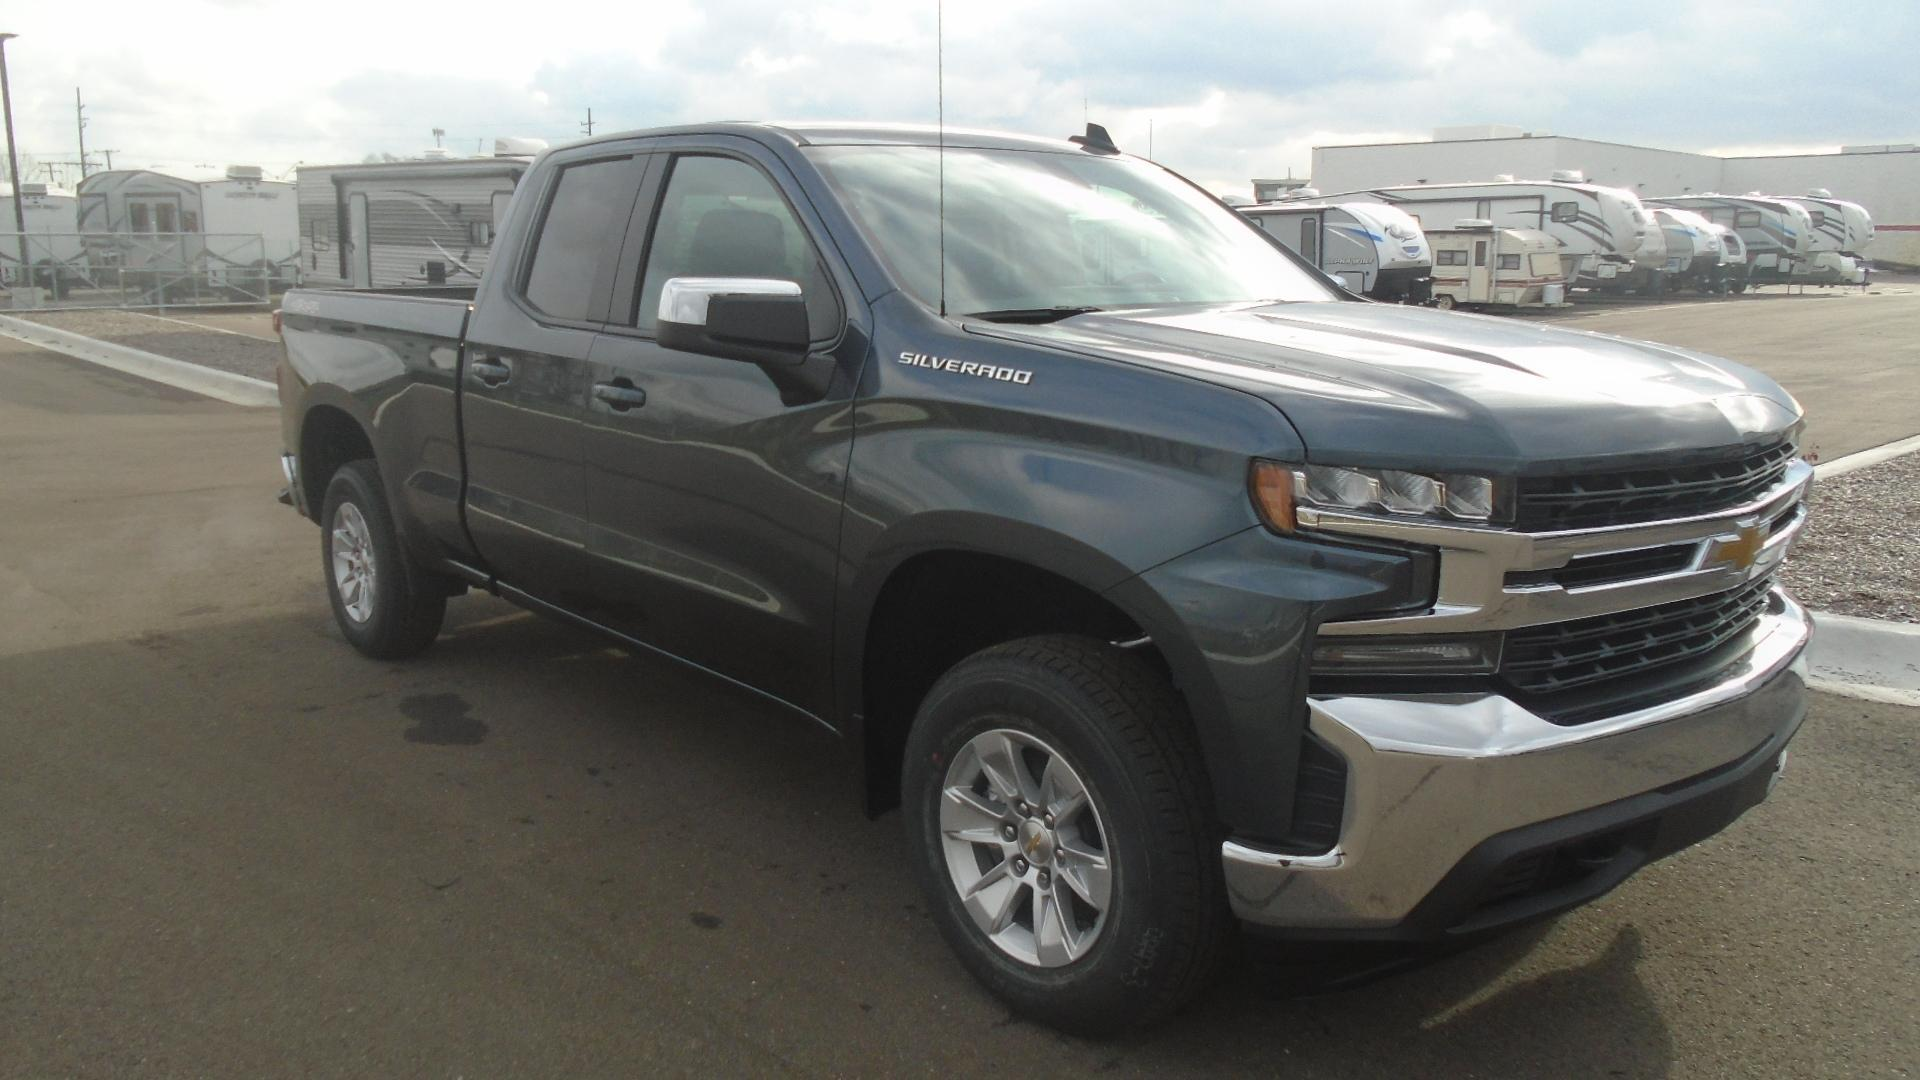 2019 Silverado 1500 Double Cab 4x4, Pickup #82289 - photo 1